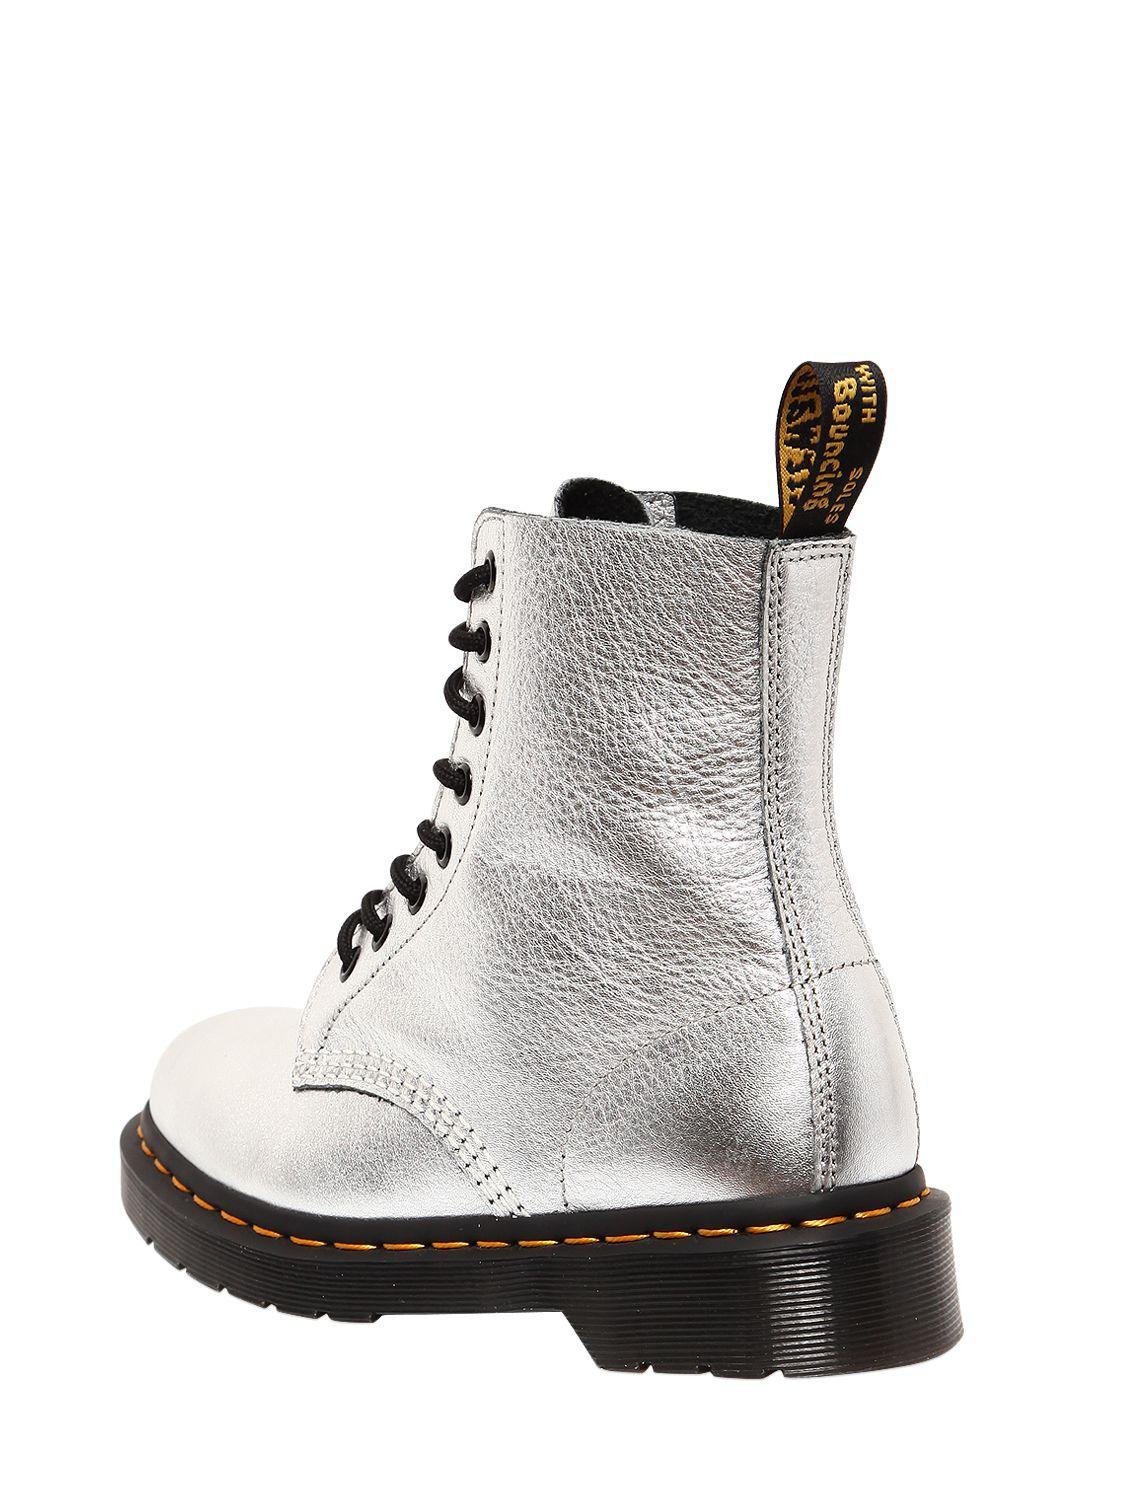 Dr. Martens 30mm Pascal Metallic Leather Boots